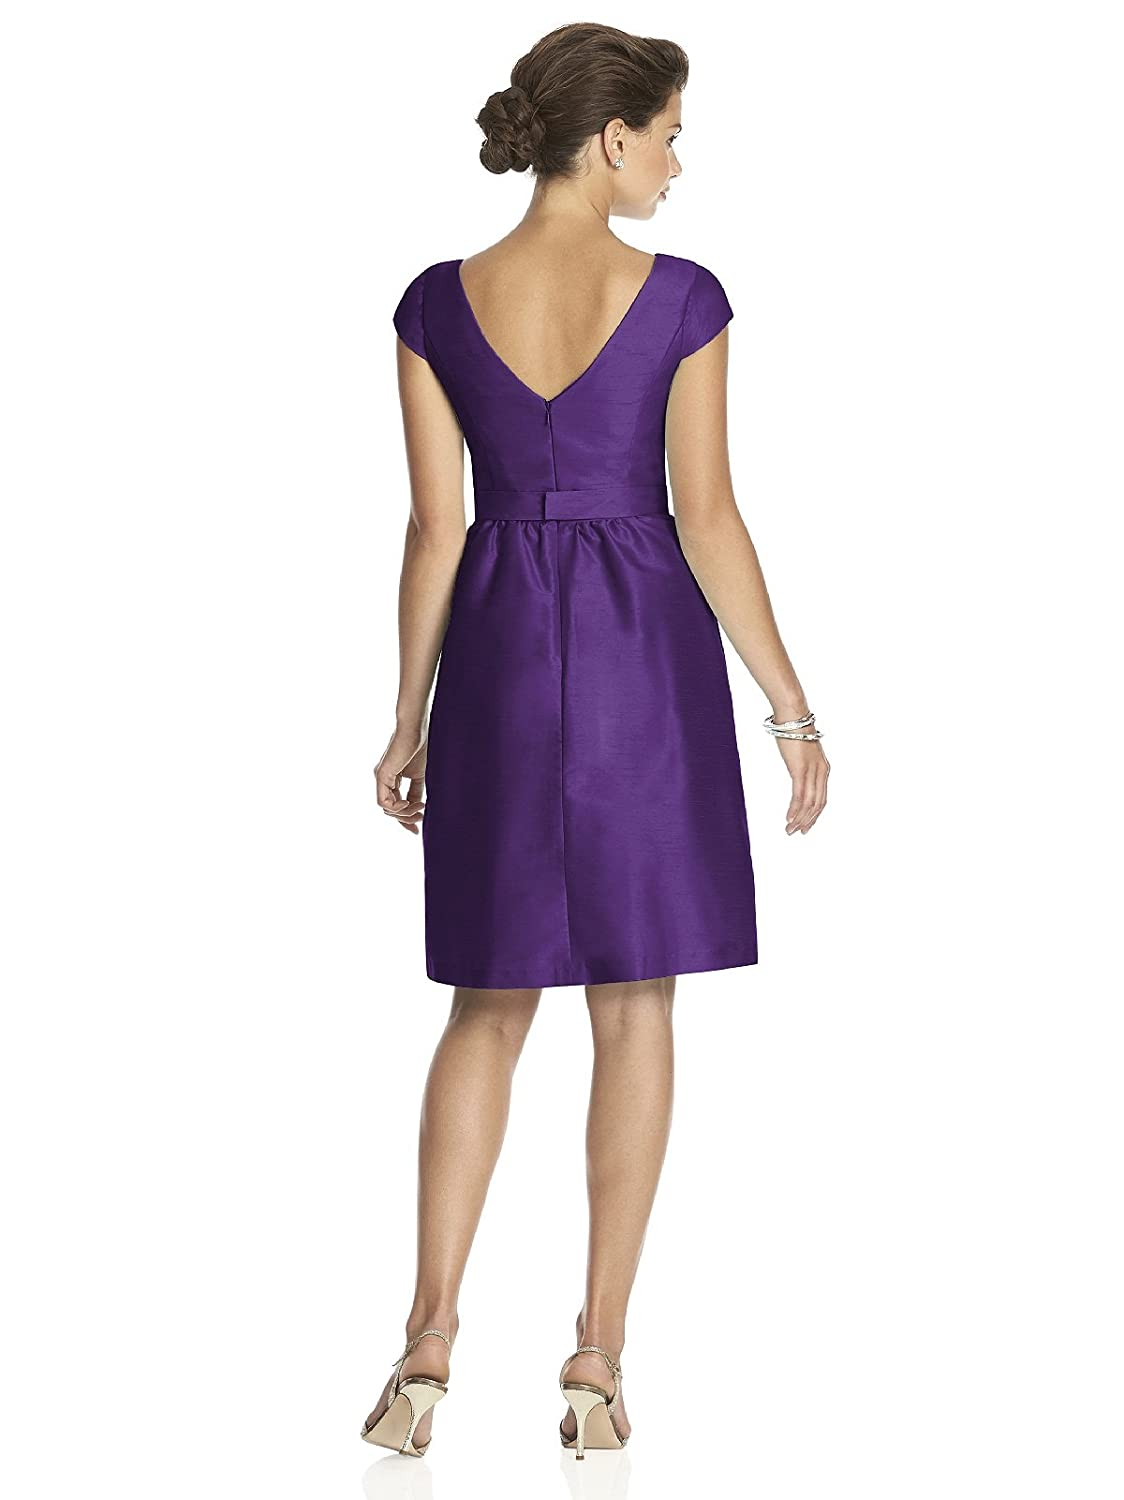 Women\'s Cocktail Length Dupioni Bateau Neck Dress with Bow by Alfred ...